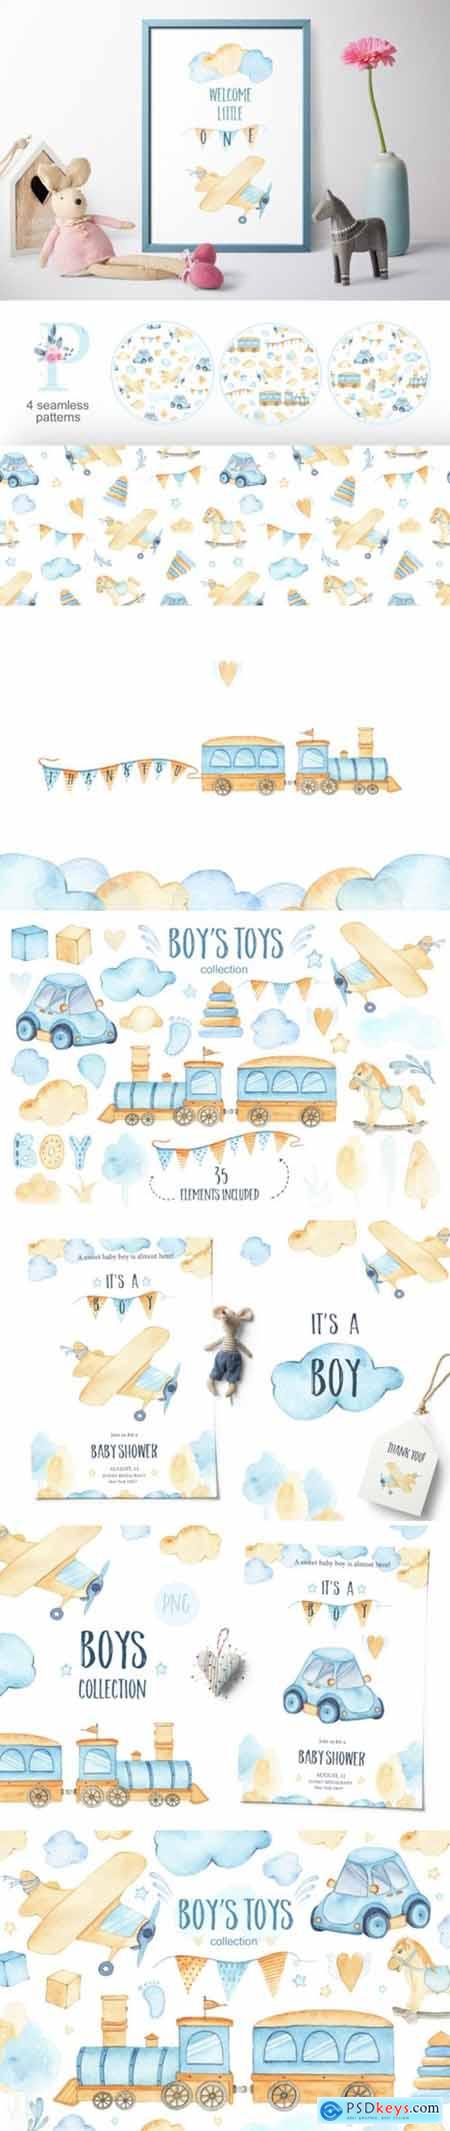 Boys Toys - Watercolor Collection 2194045